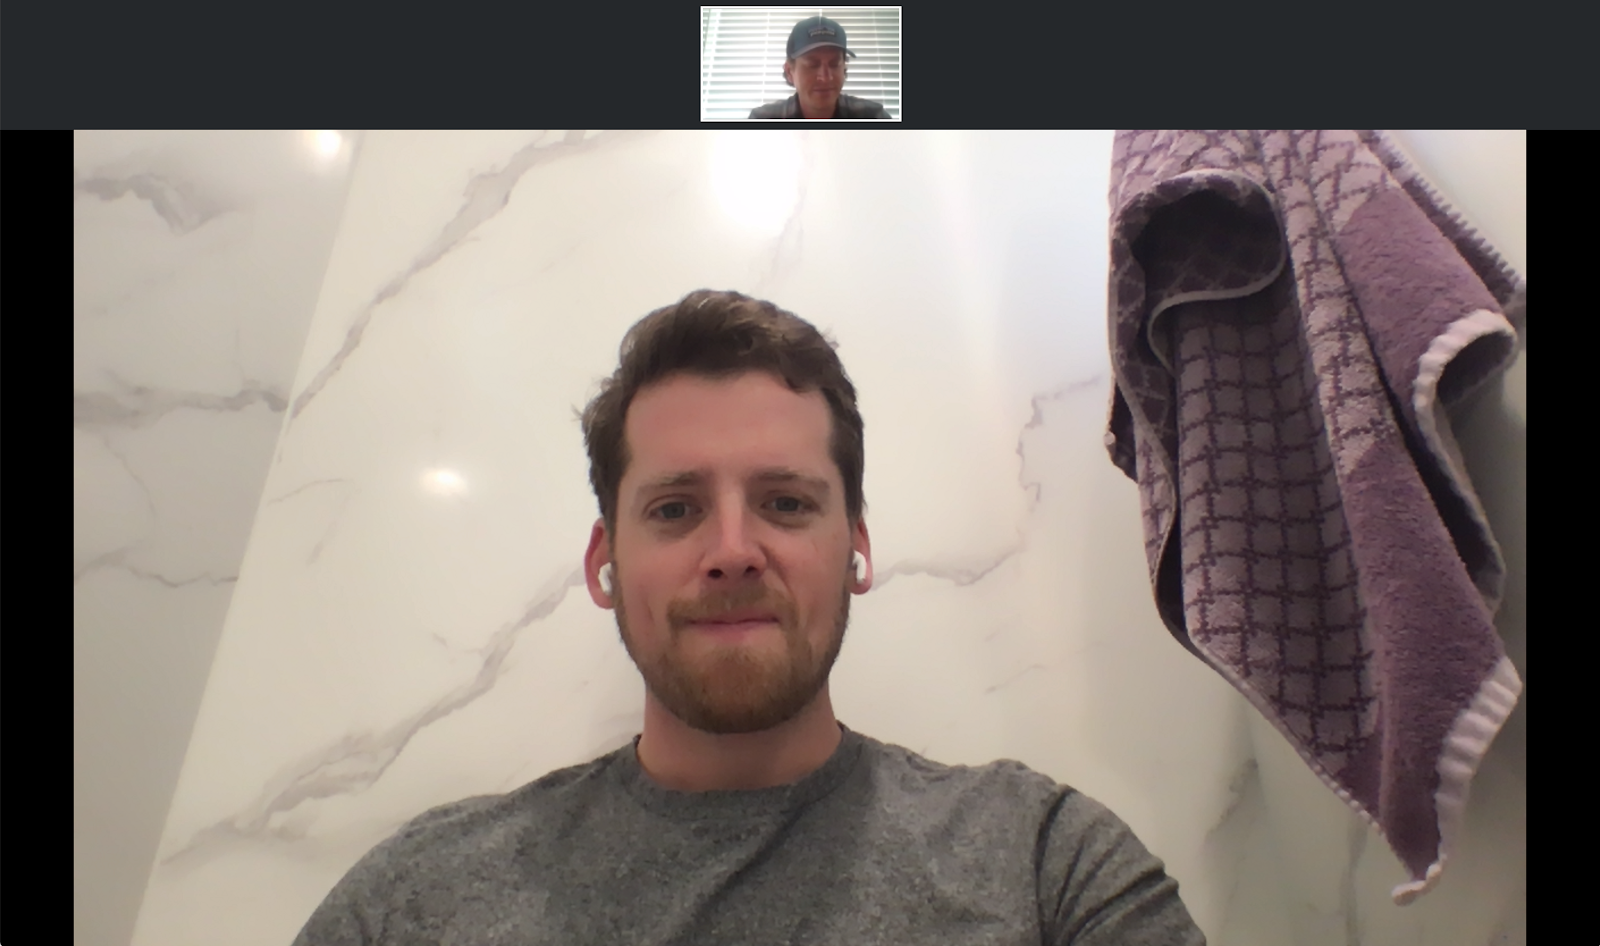 CloudApp CEO Scott Smith takes a meeting in his shower.